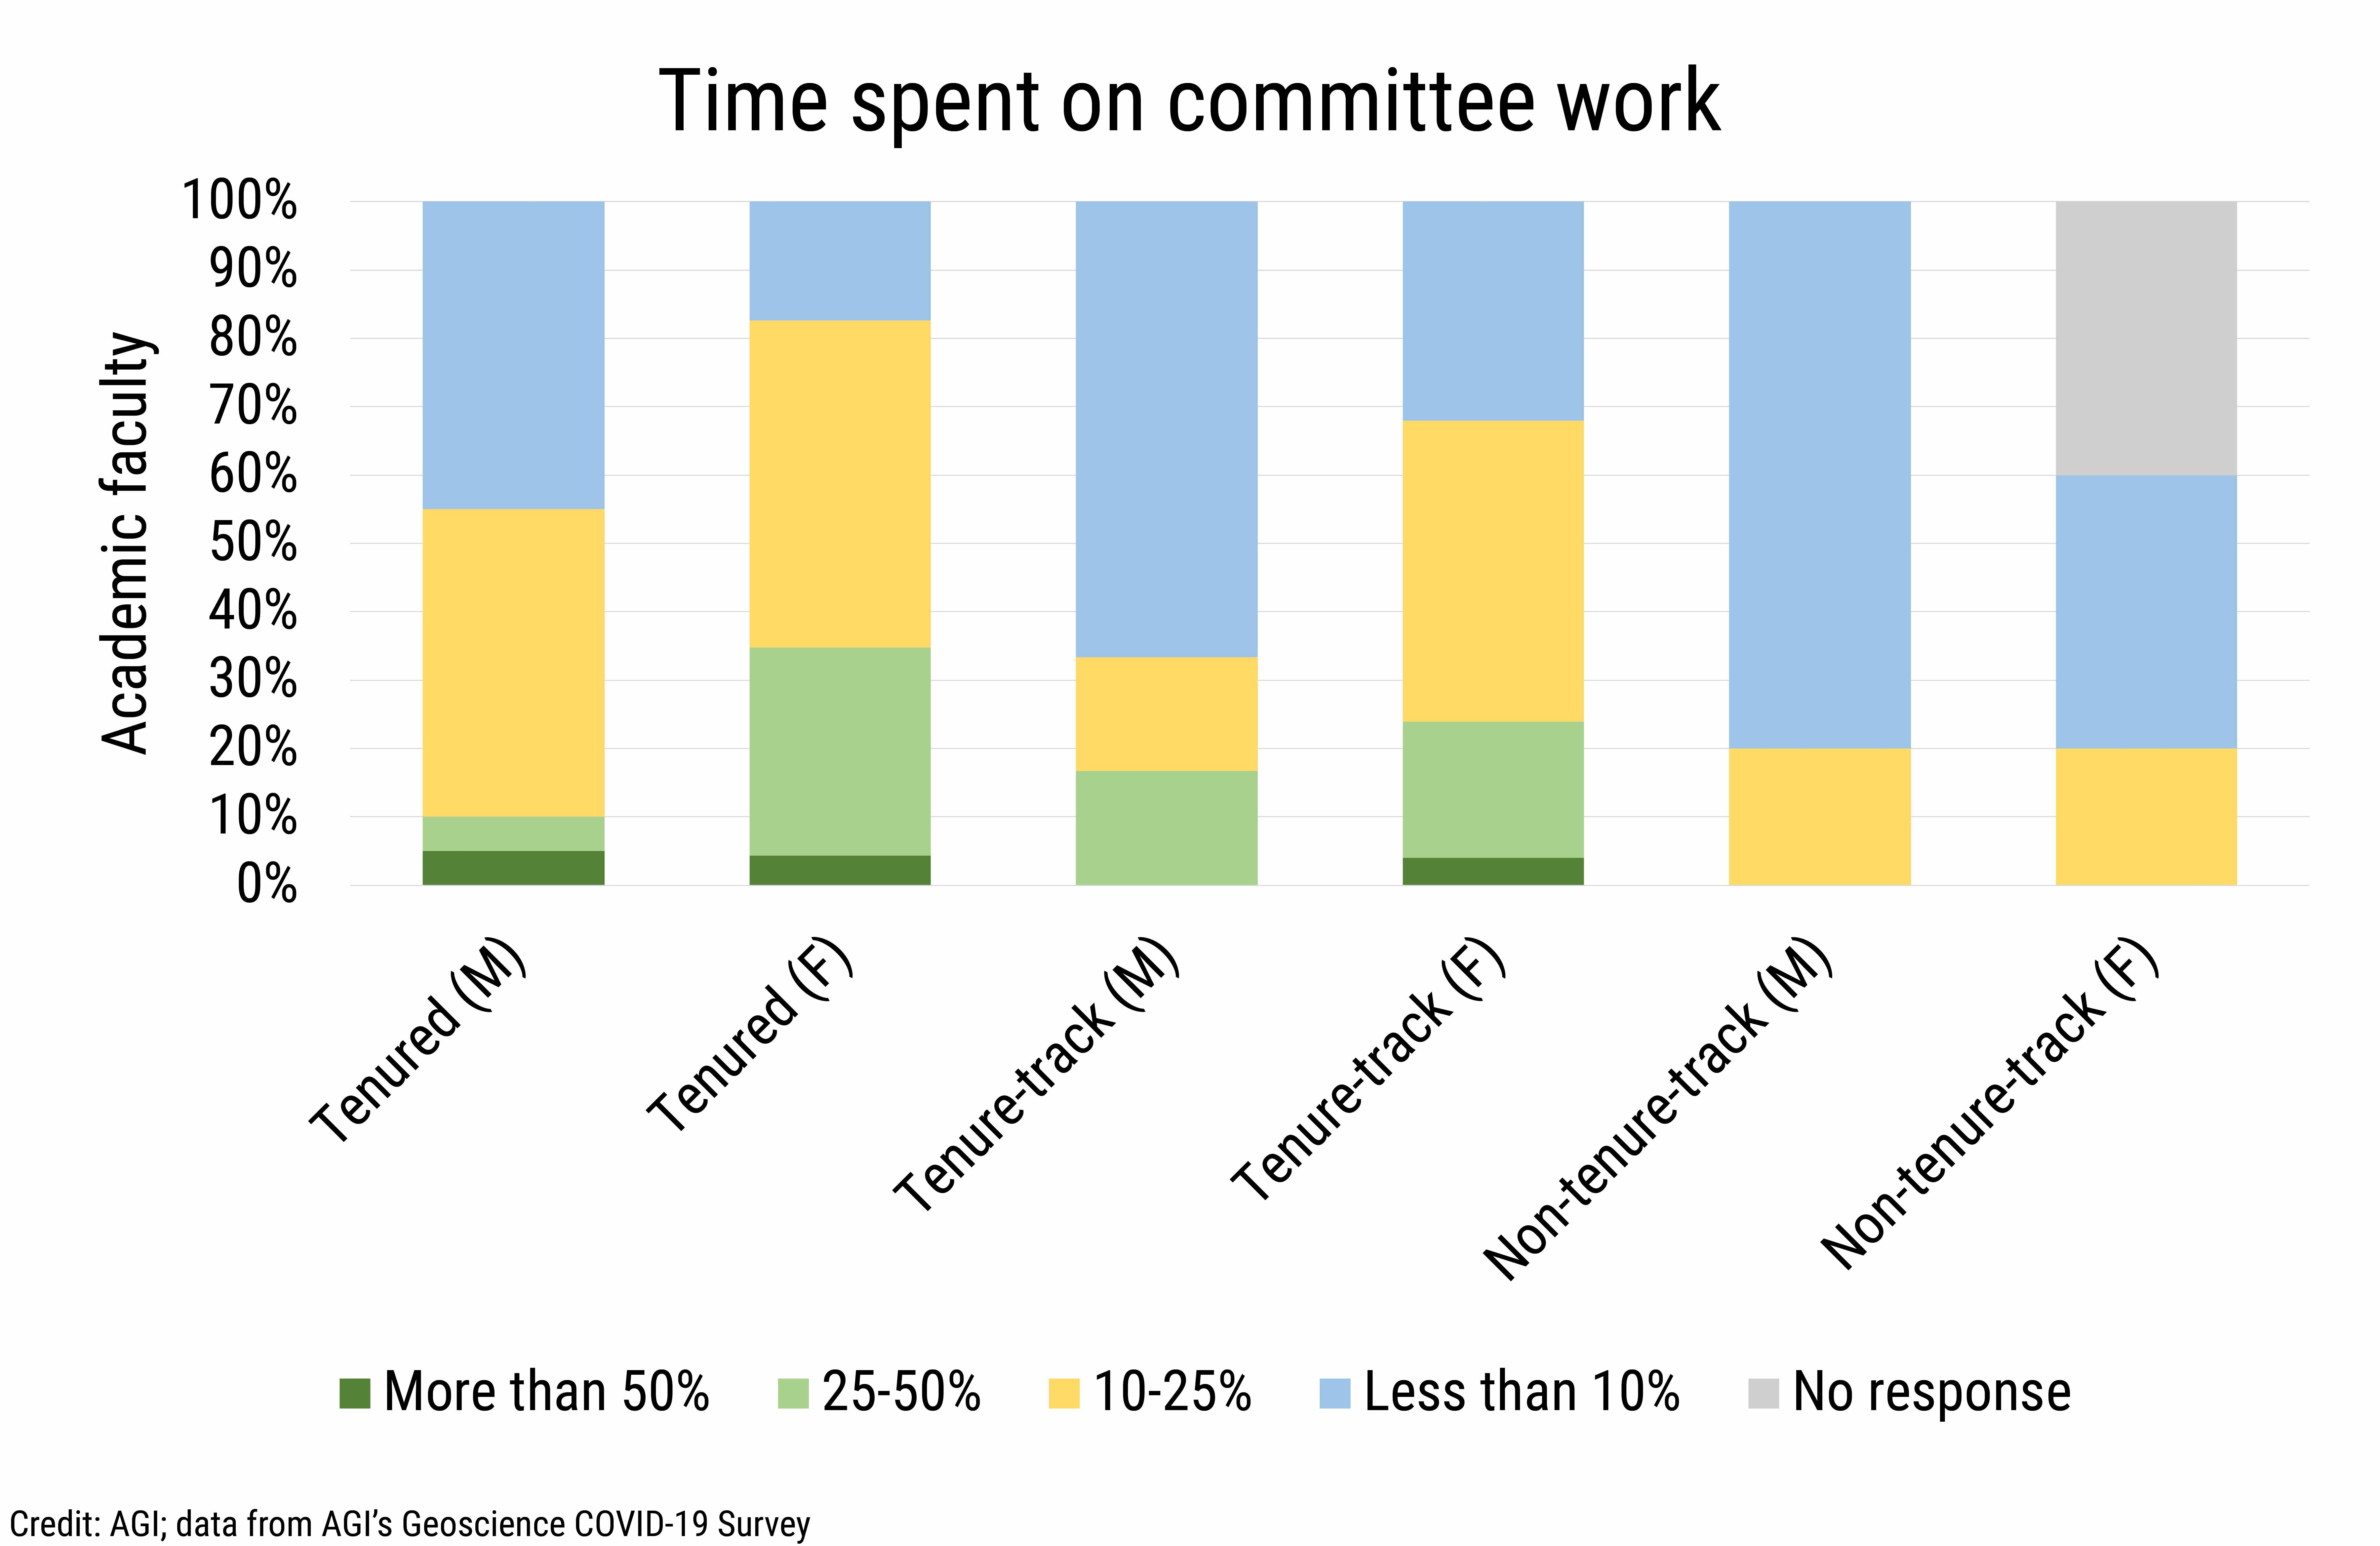 DB_2021-019 chart 01: Time spent on committee work  (Credit: AGI; data from AGI's Geoscience COVID-19 Survey)